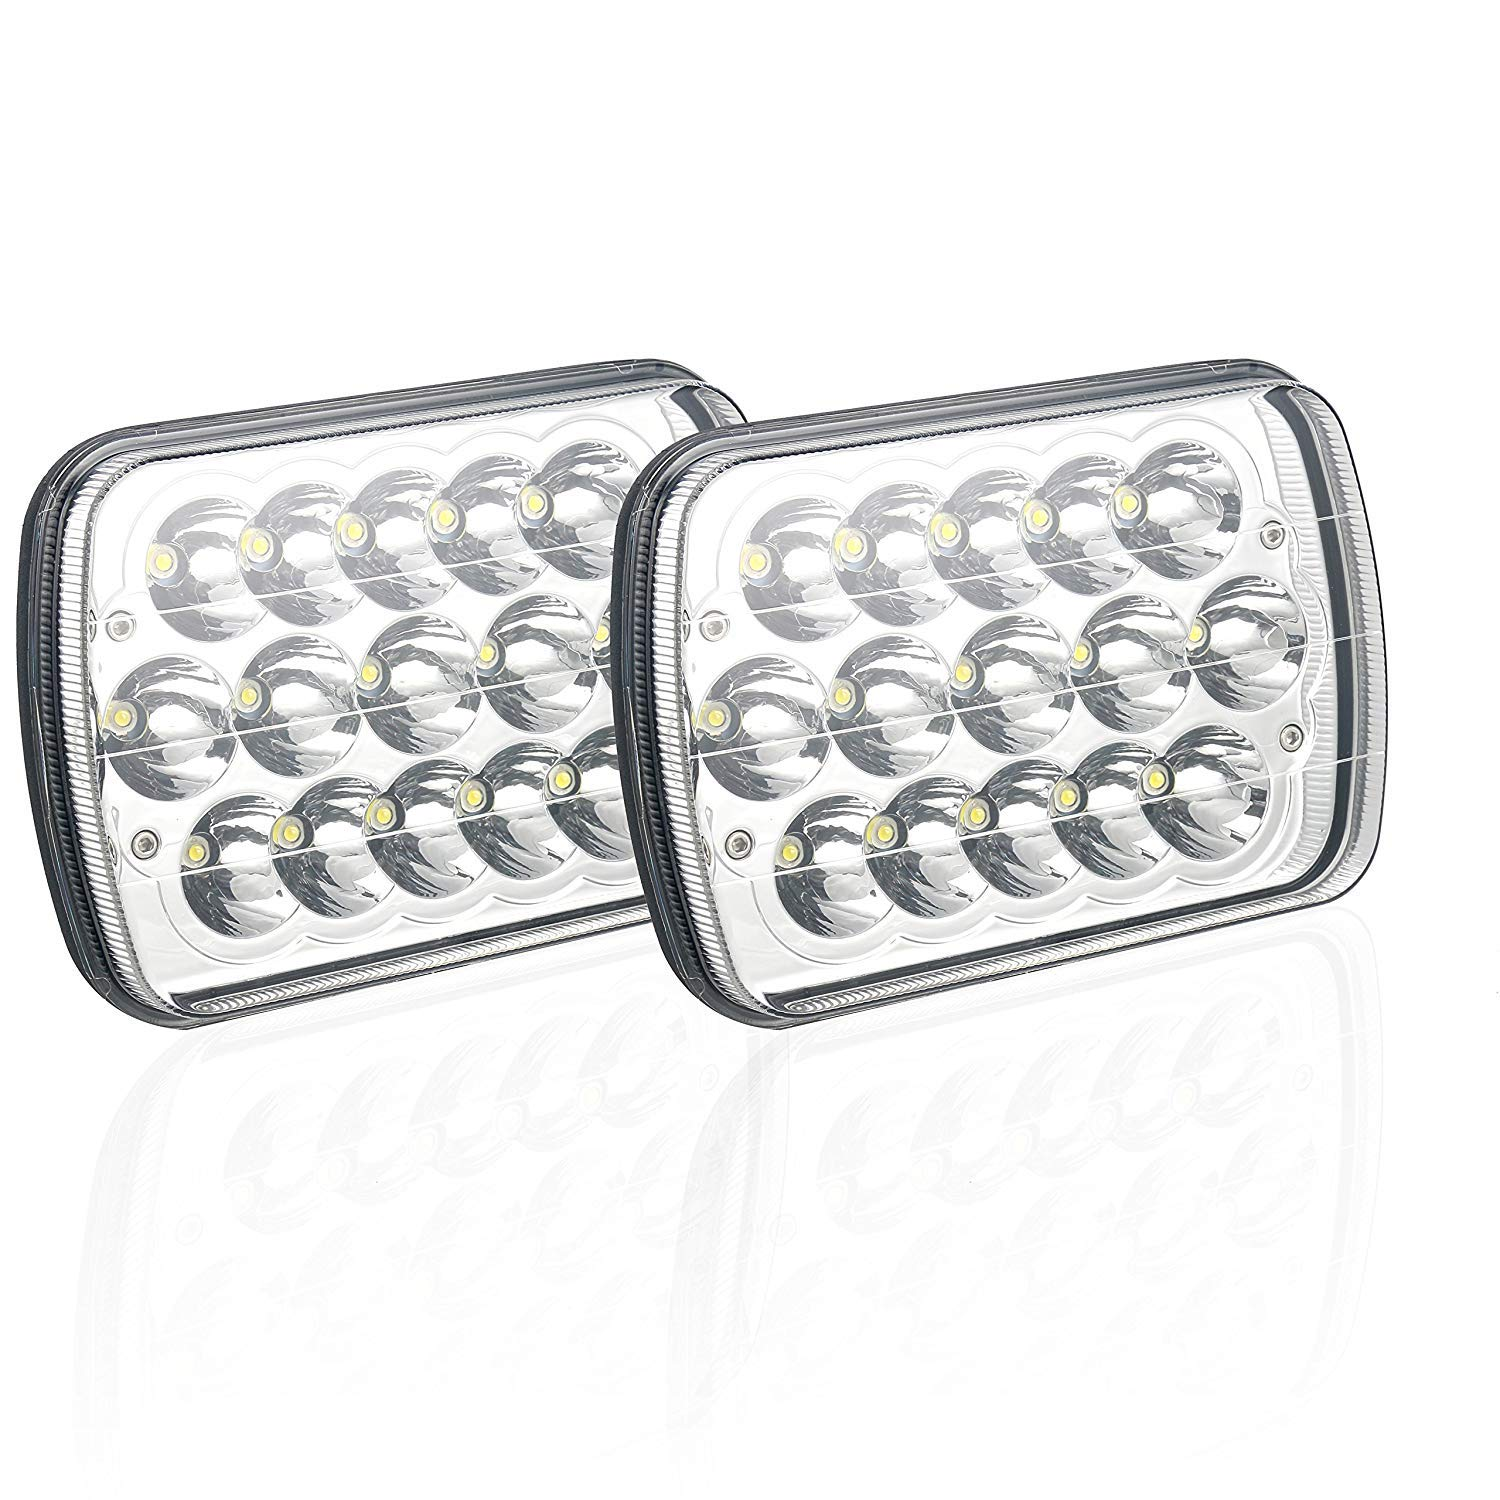 2PCS 45w Rectangle 5x7 7x6 Led Headlight Led Sealed Beam Compatible with Jeep Wrangler YJ Xj Chevy Cherokee Truck etc